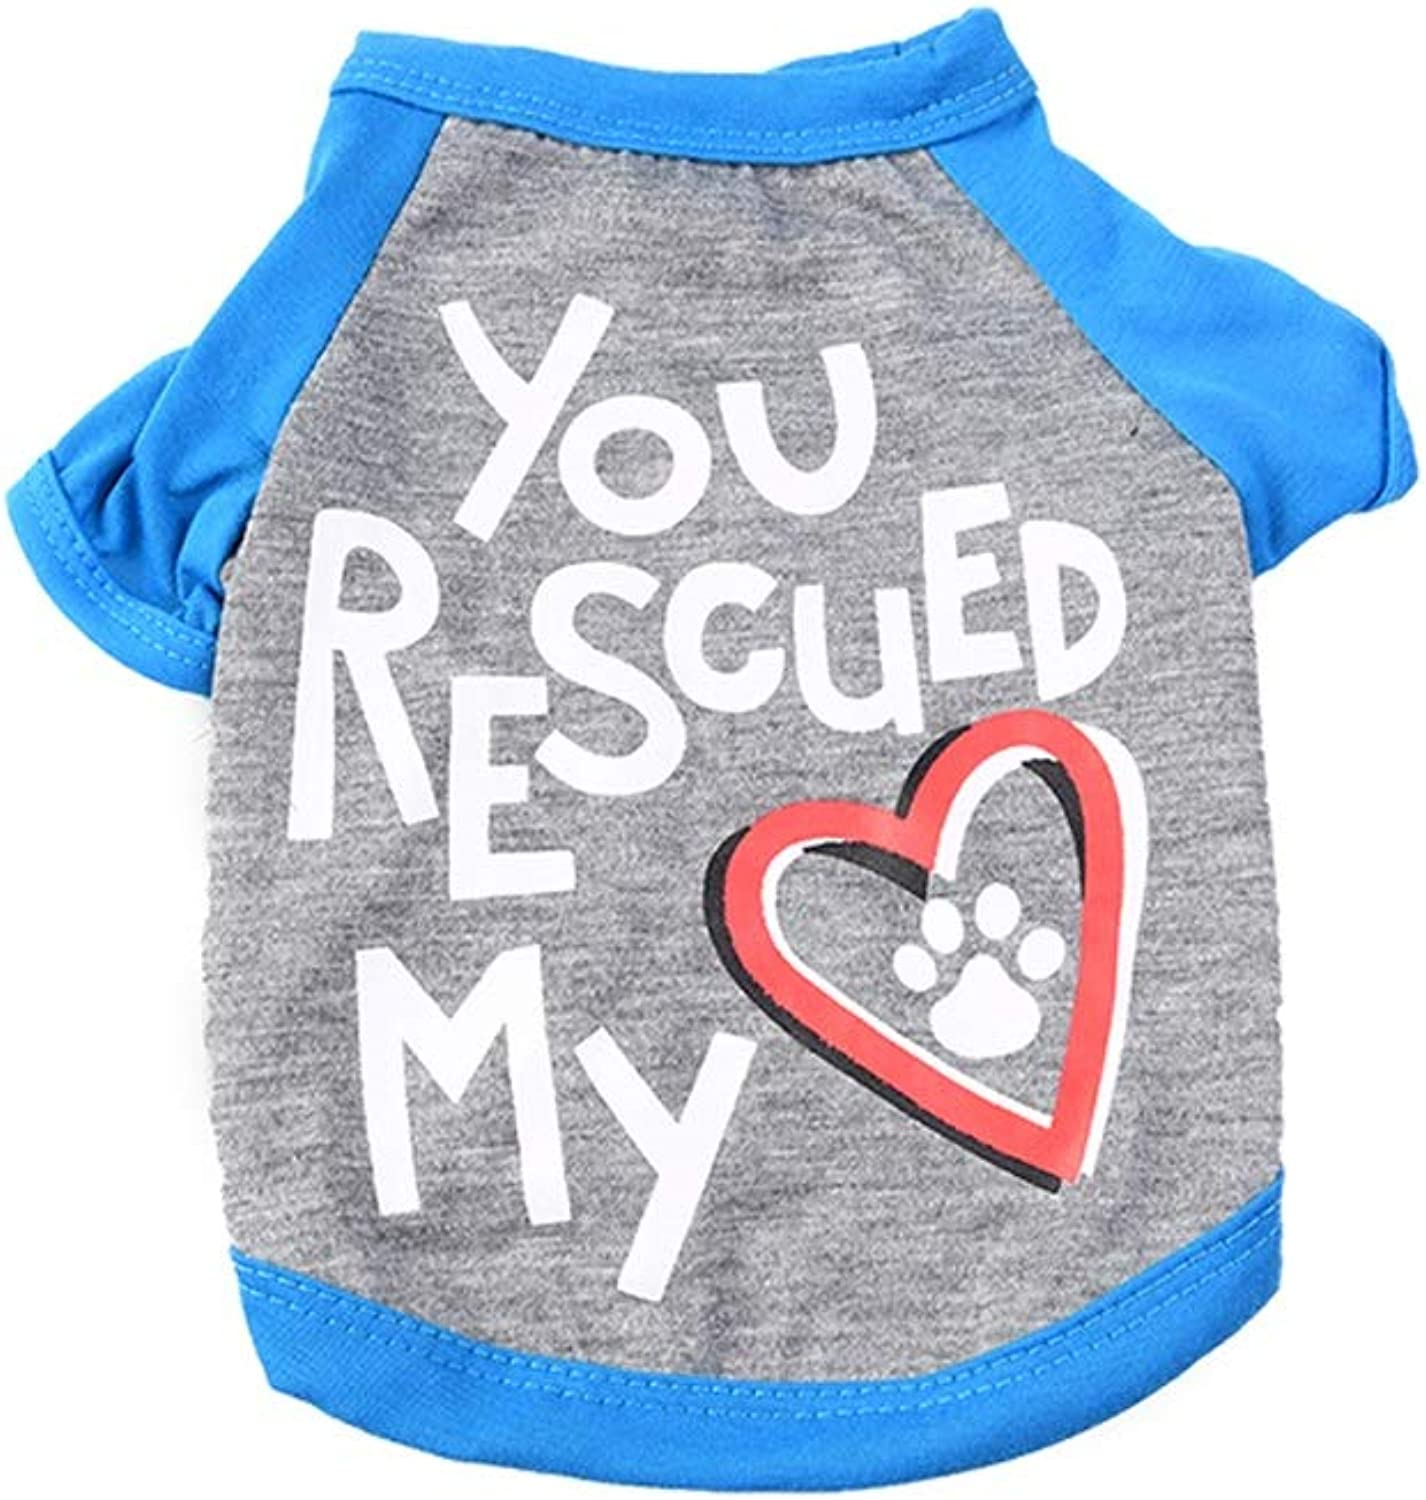 LSLMCS Pet Supplies Small Dog T Shirt for TwoLegged Clothes Cat Puppies Clothing Teddy Bear Puppy Vest Costume Spring and Summer,bluee, Pink, (XSL) (color   bluee, Size   M)